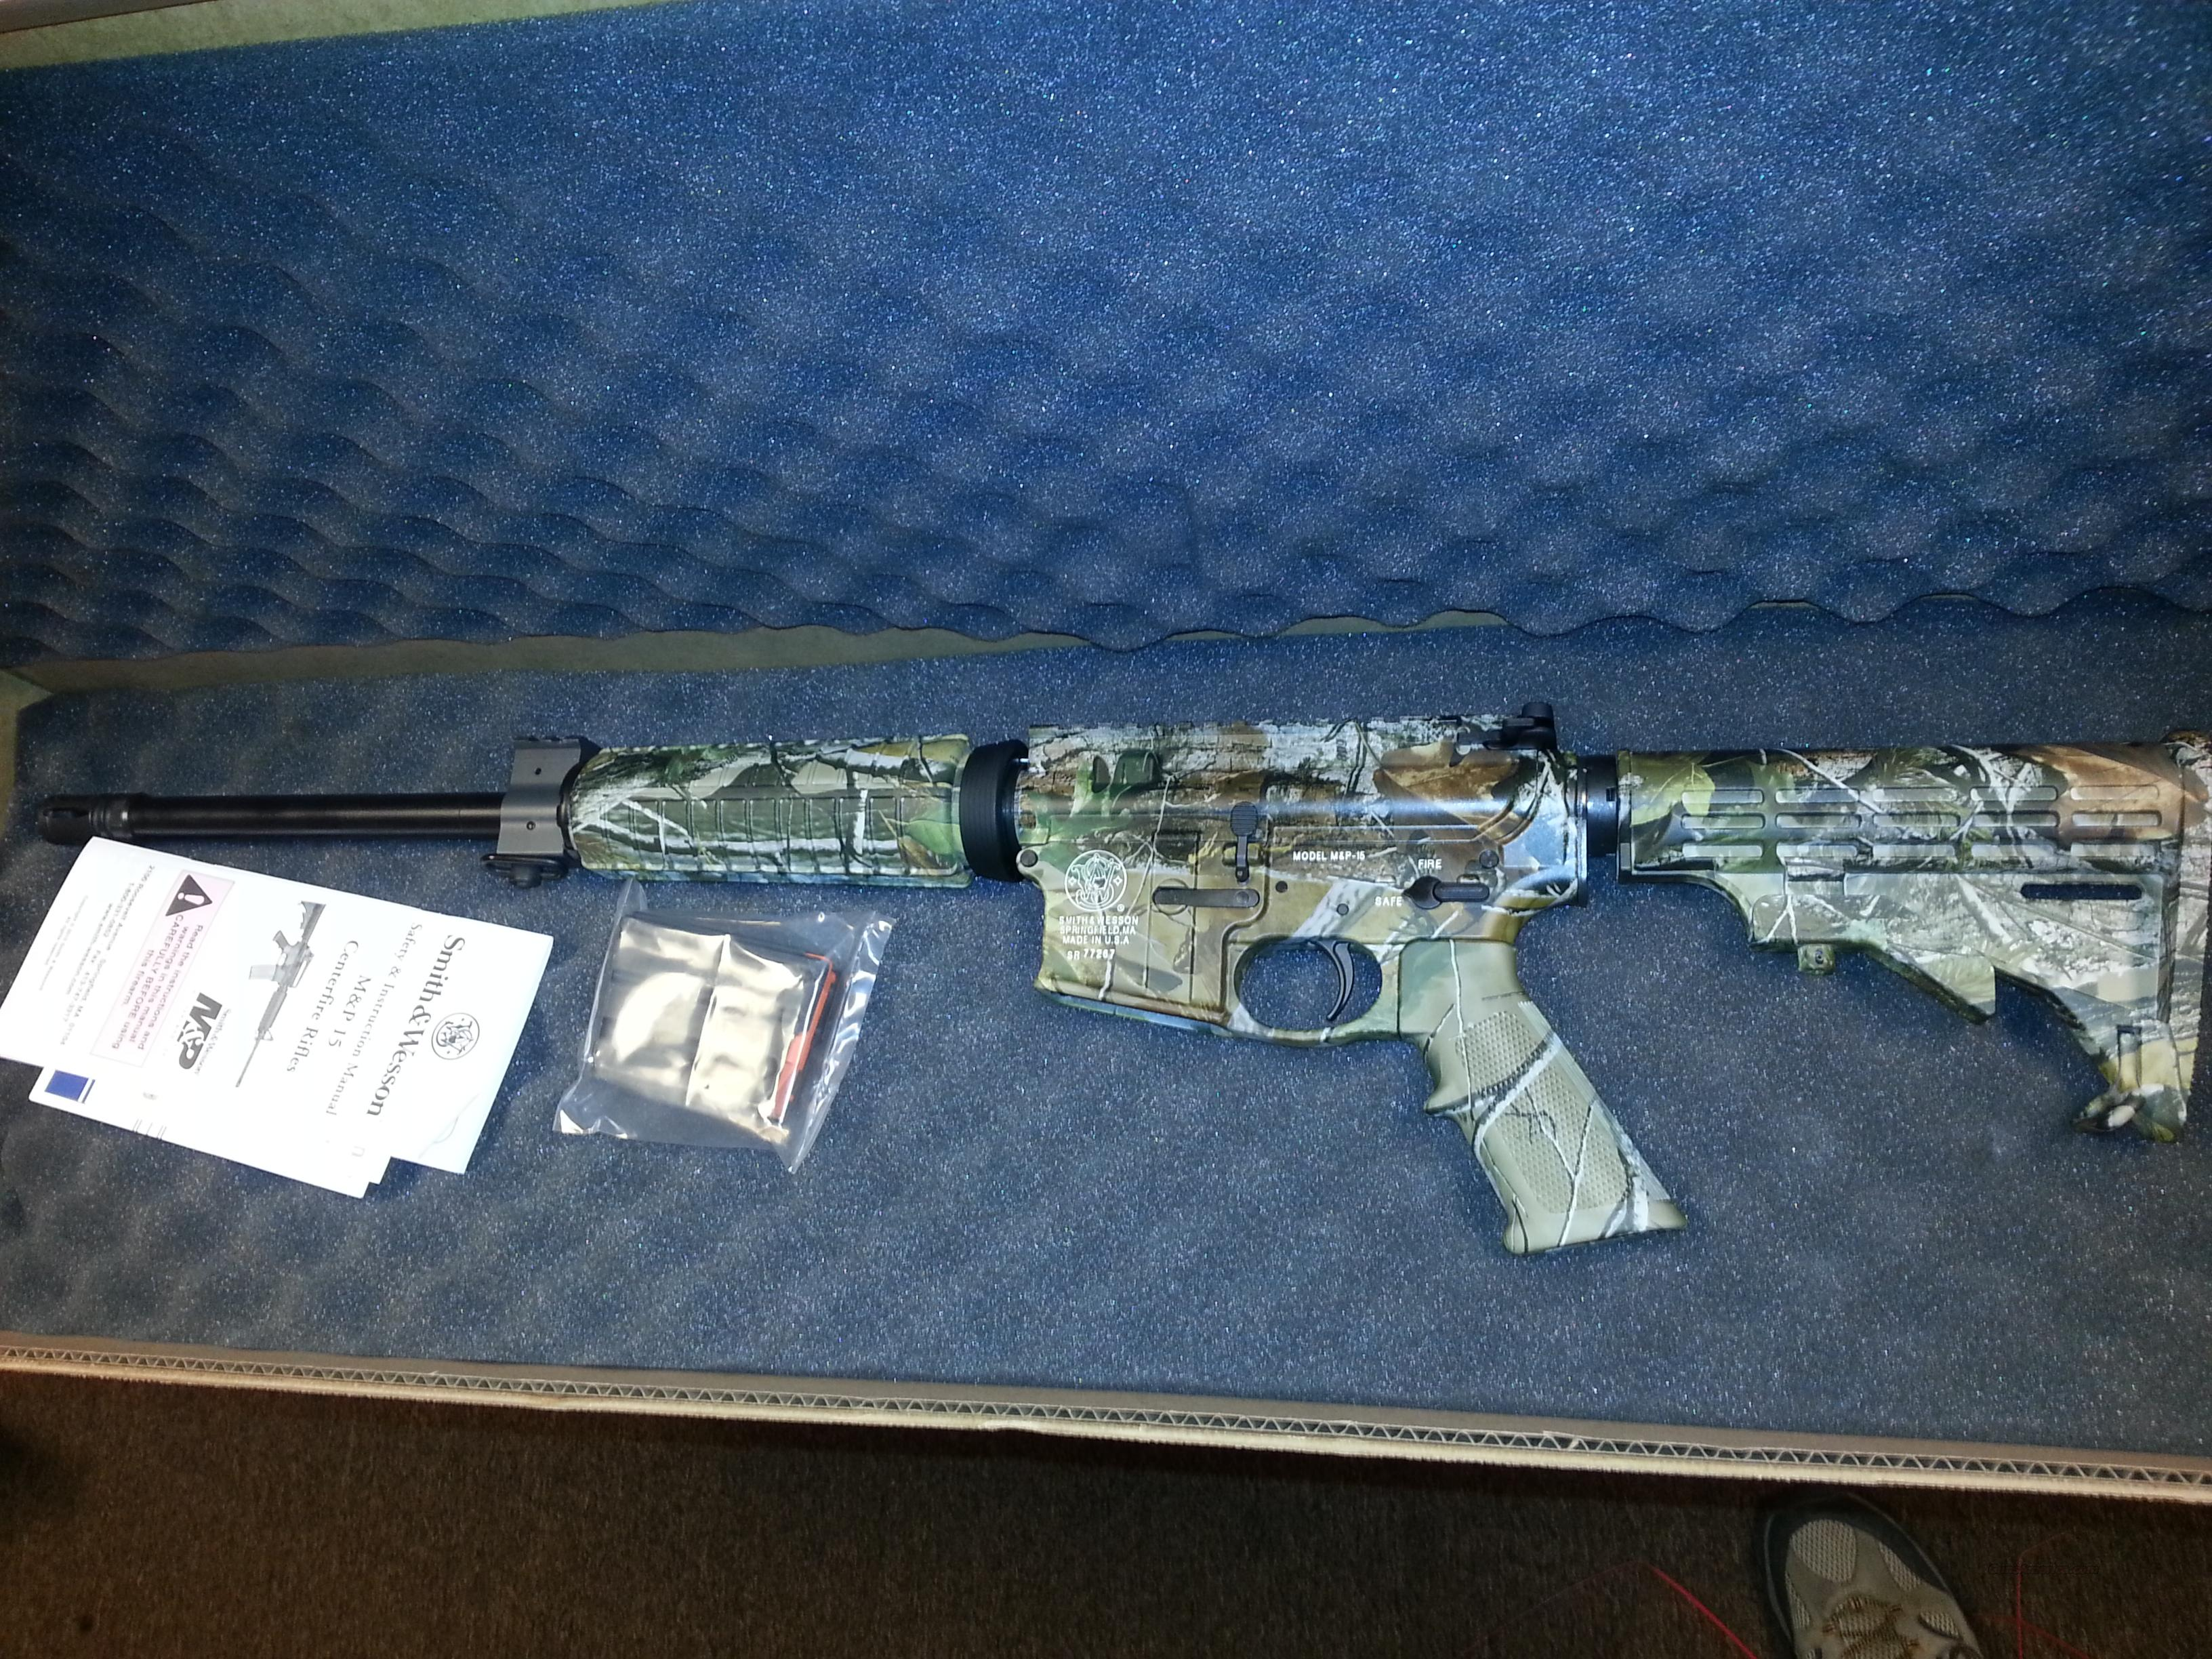 SMITH & WESSON M&P15 300 Whisper/.300 BLACKOUT in Realtree All Purpose camo  Guns > Rifles > Smith & Wesson Rifles > M&P